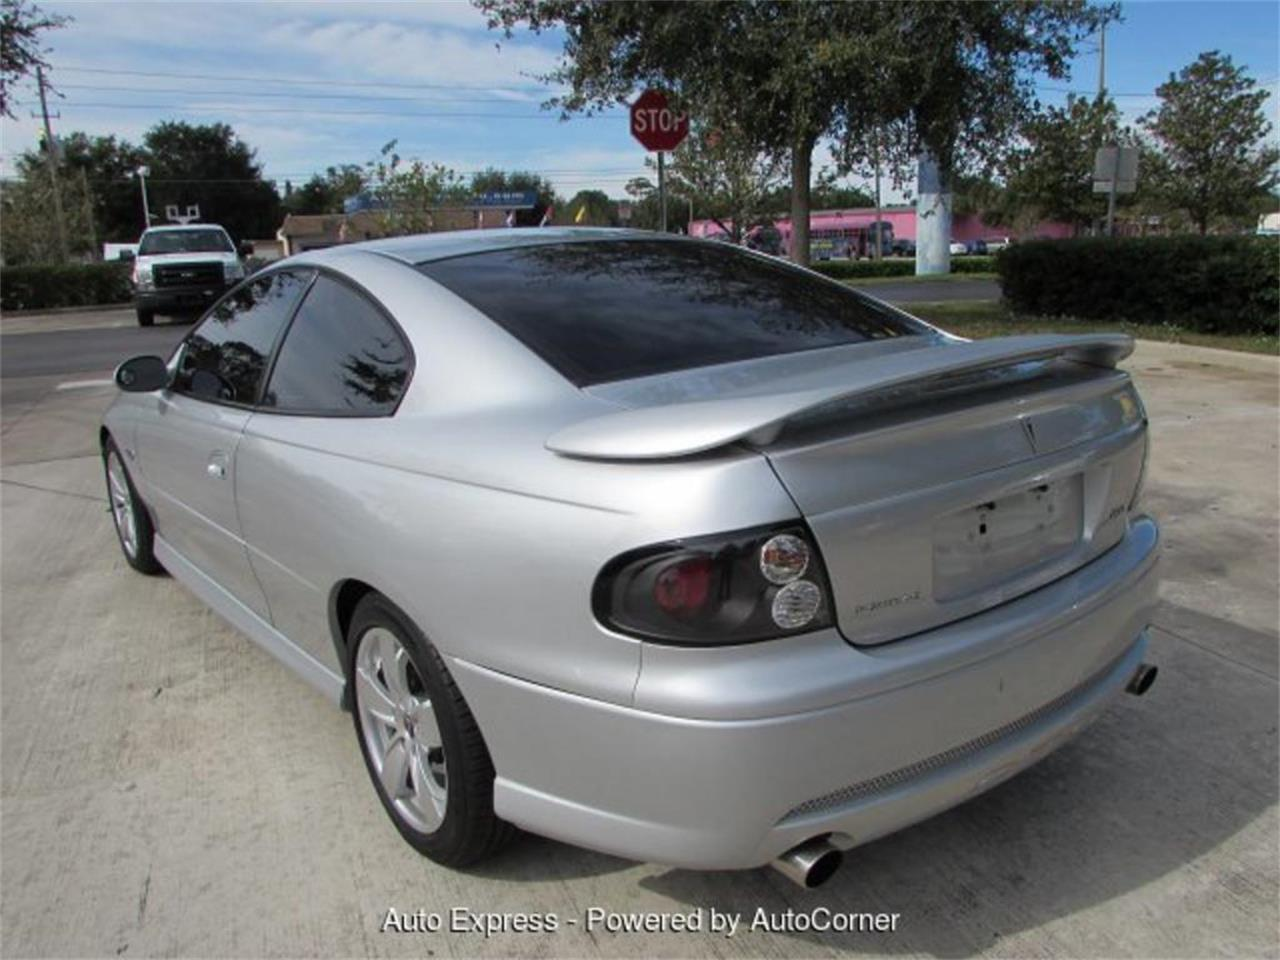 Large Picture of 2005 GTO located in Orlando Florida - $13,999.00 Offered by Auto Express - Q2A5